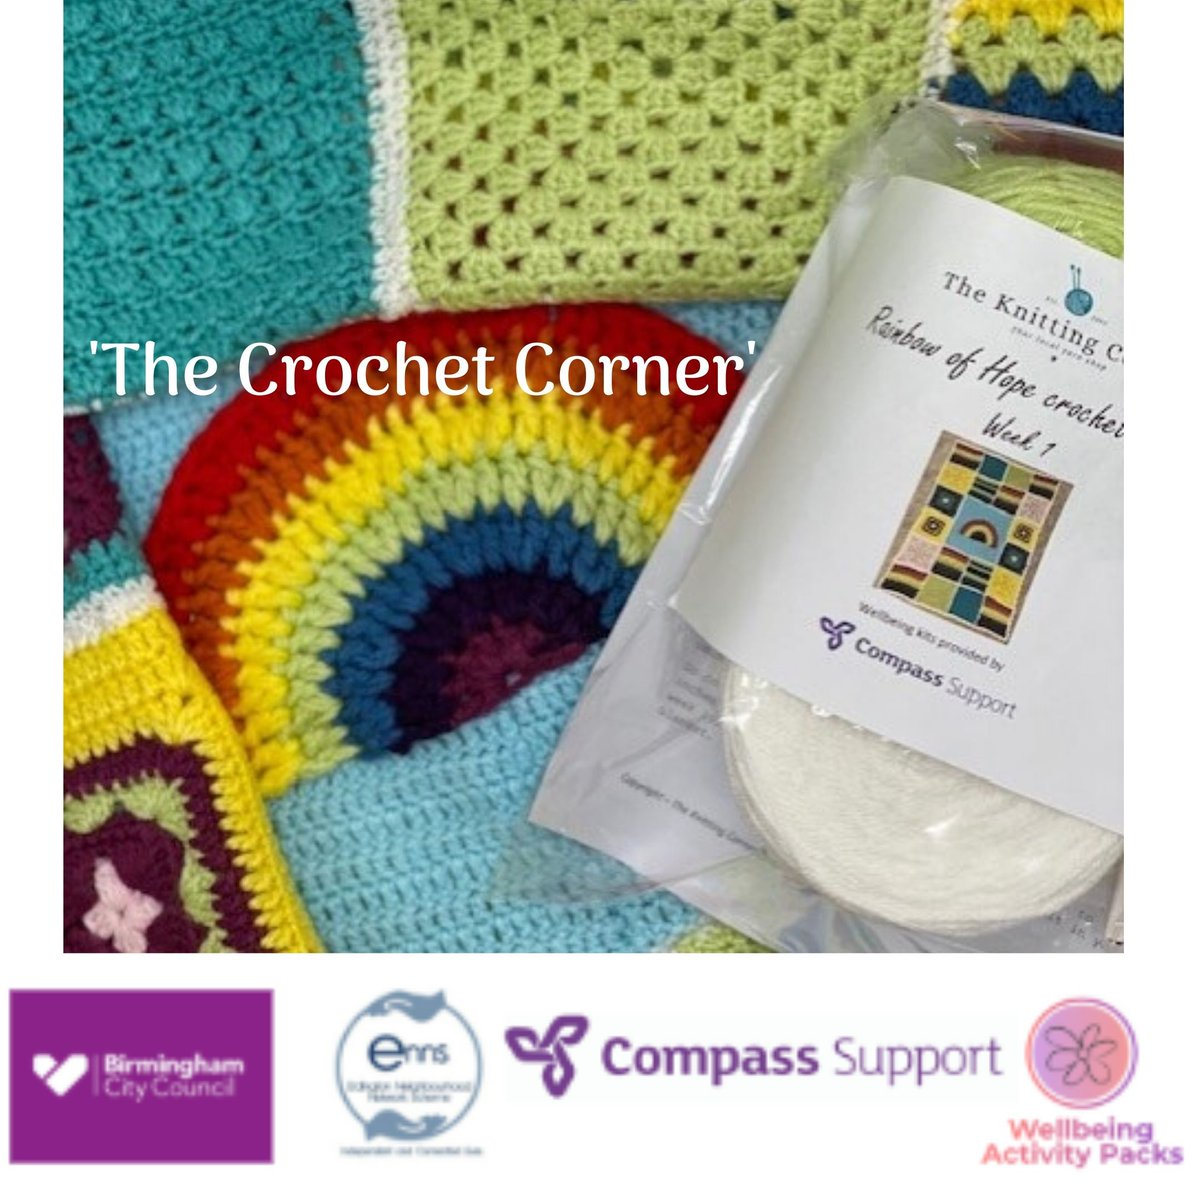 **Sign up TODAY** The amazing The Knitting Corner have designed and created the weekly patterns for those who sign up to our FREE 'Crochet Corner' weekly packs. For more info, text or call Leonie on 07943 079 496 or email leonie.hammond@compass-support.org.uk pic.twitter.com/PcKx8Re2U6